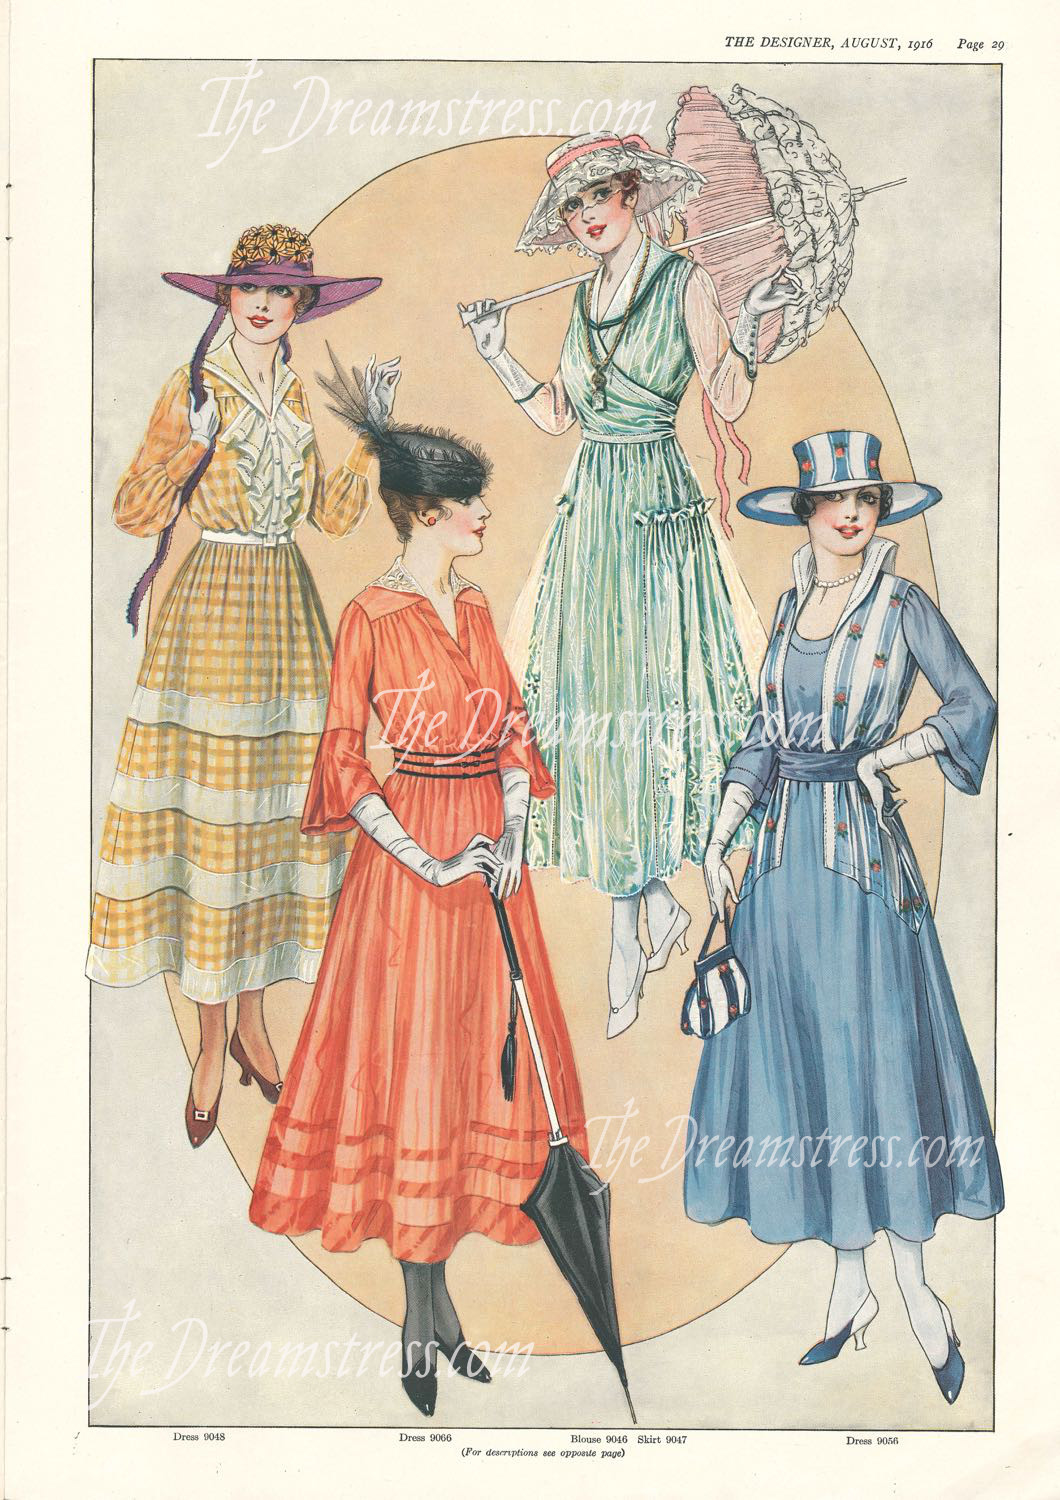 The Designer, August 1916 thedreamstress.com